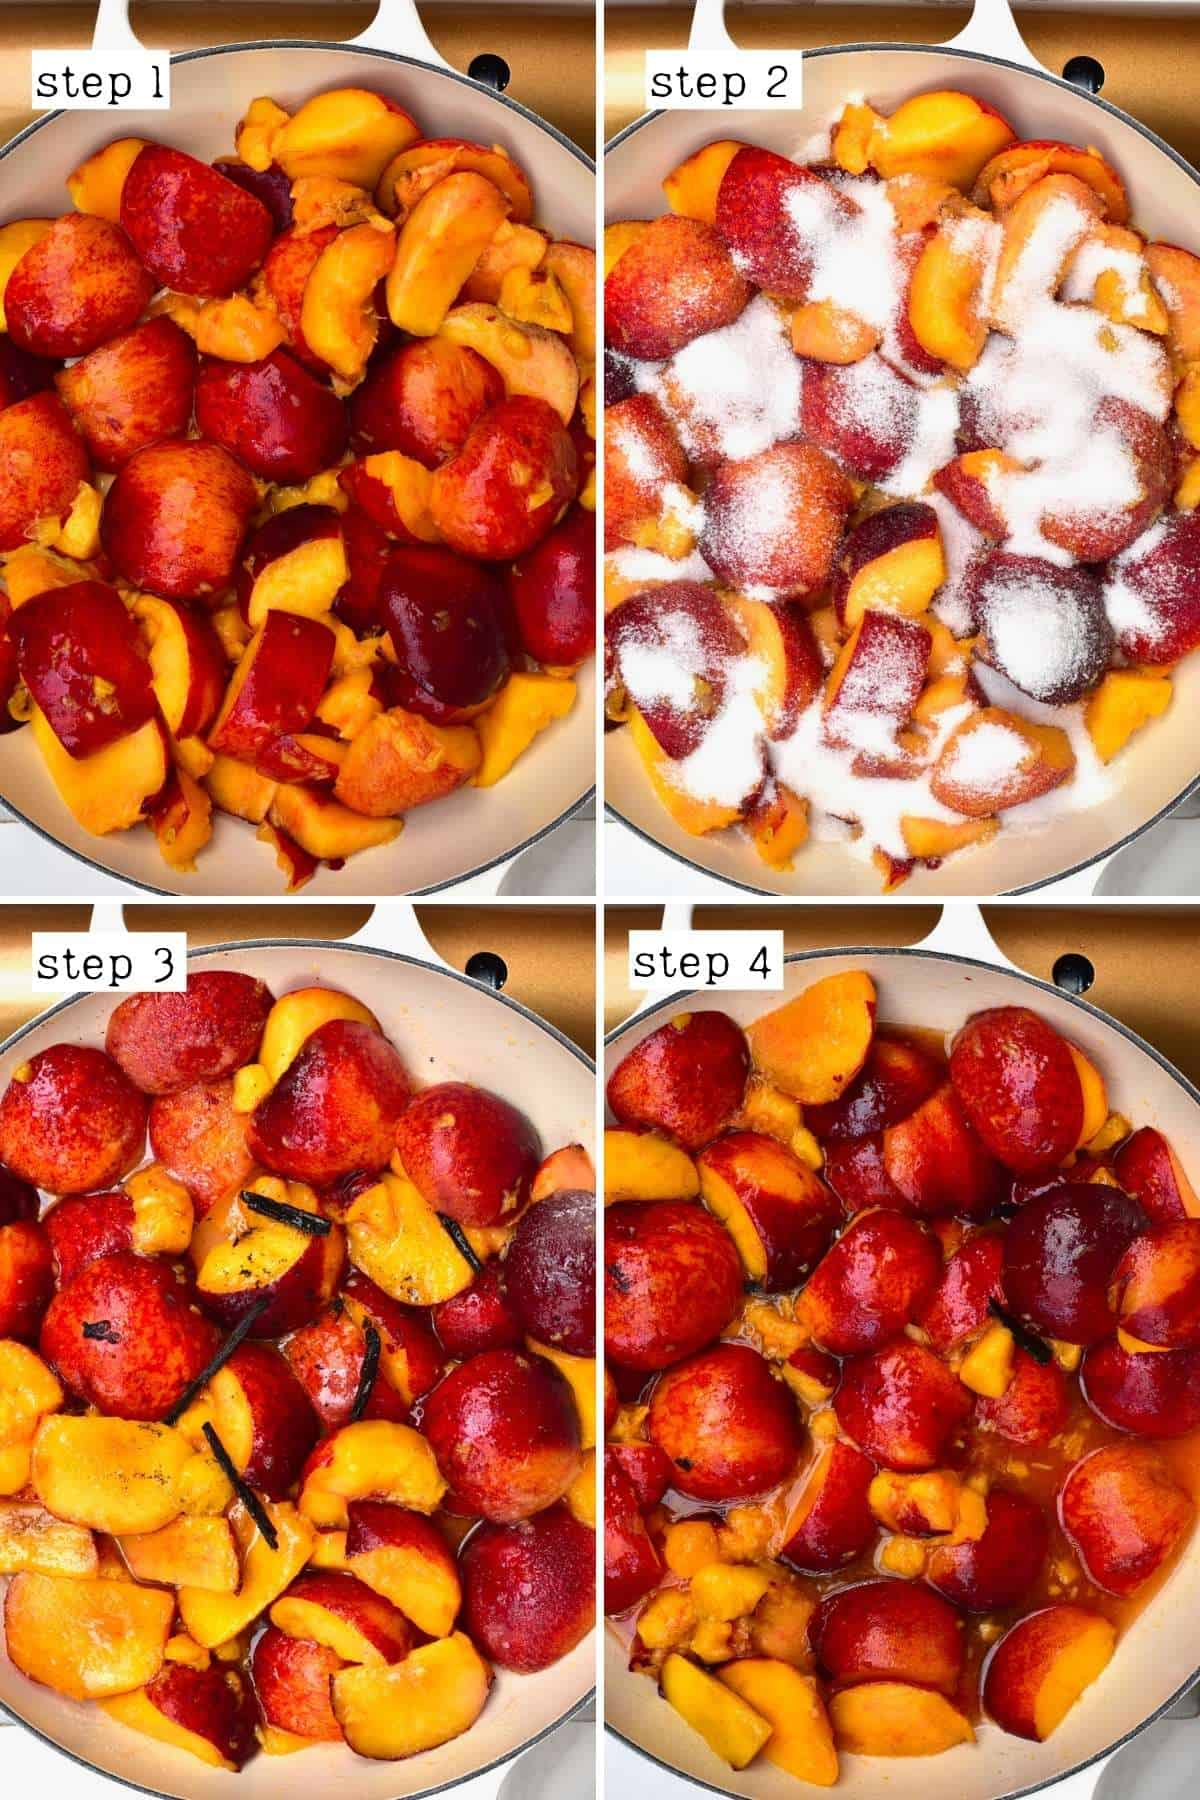 Steps for cooking peaches with sugar